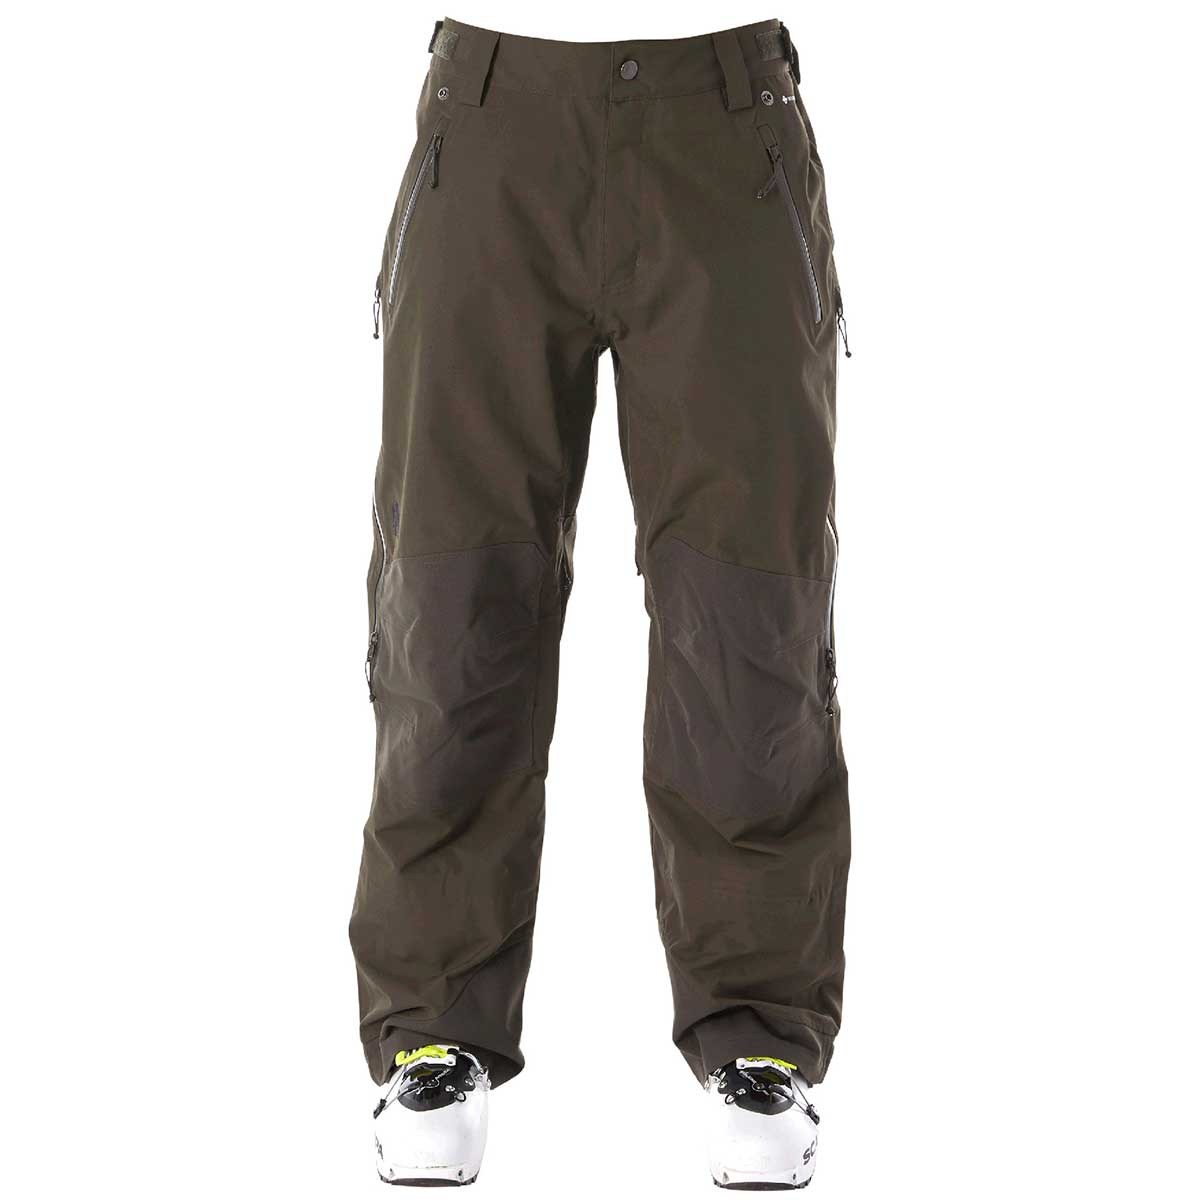 Flylow men's Chemical Pant in Kombu front view